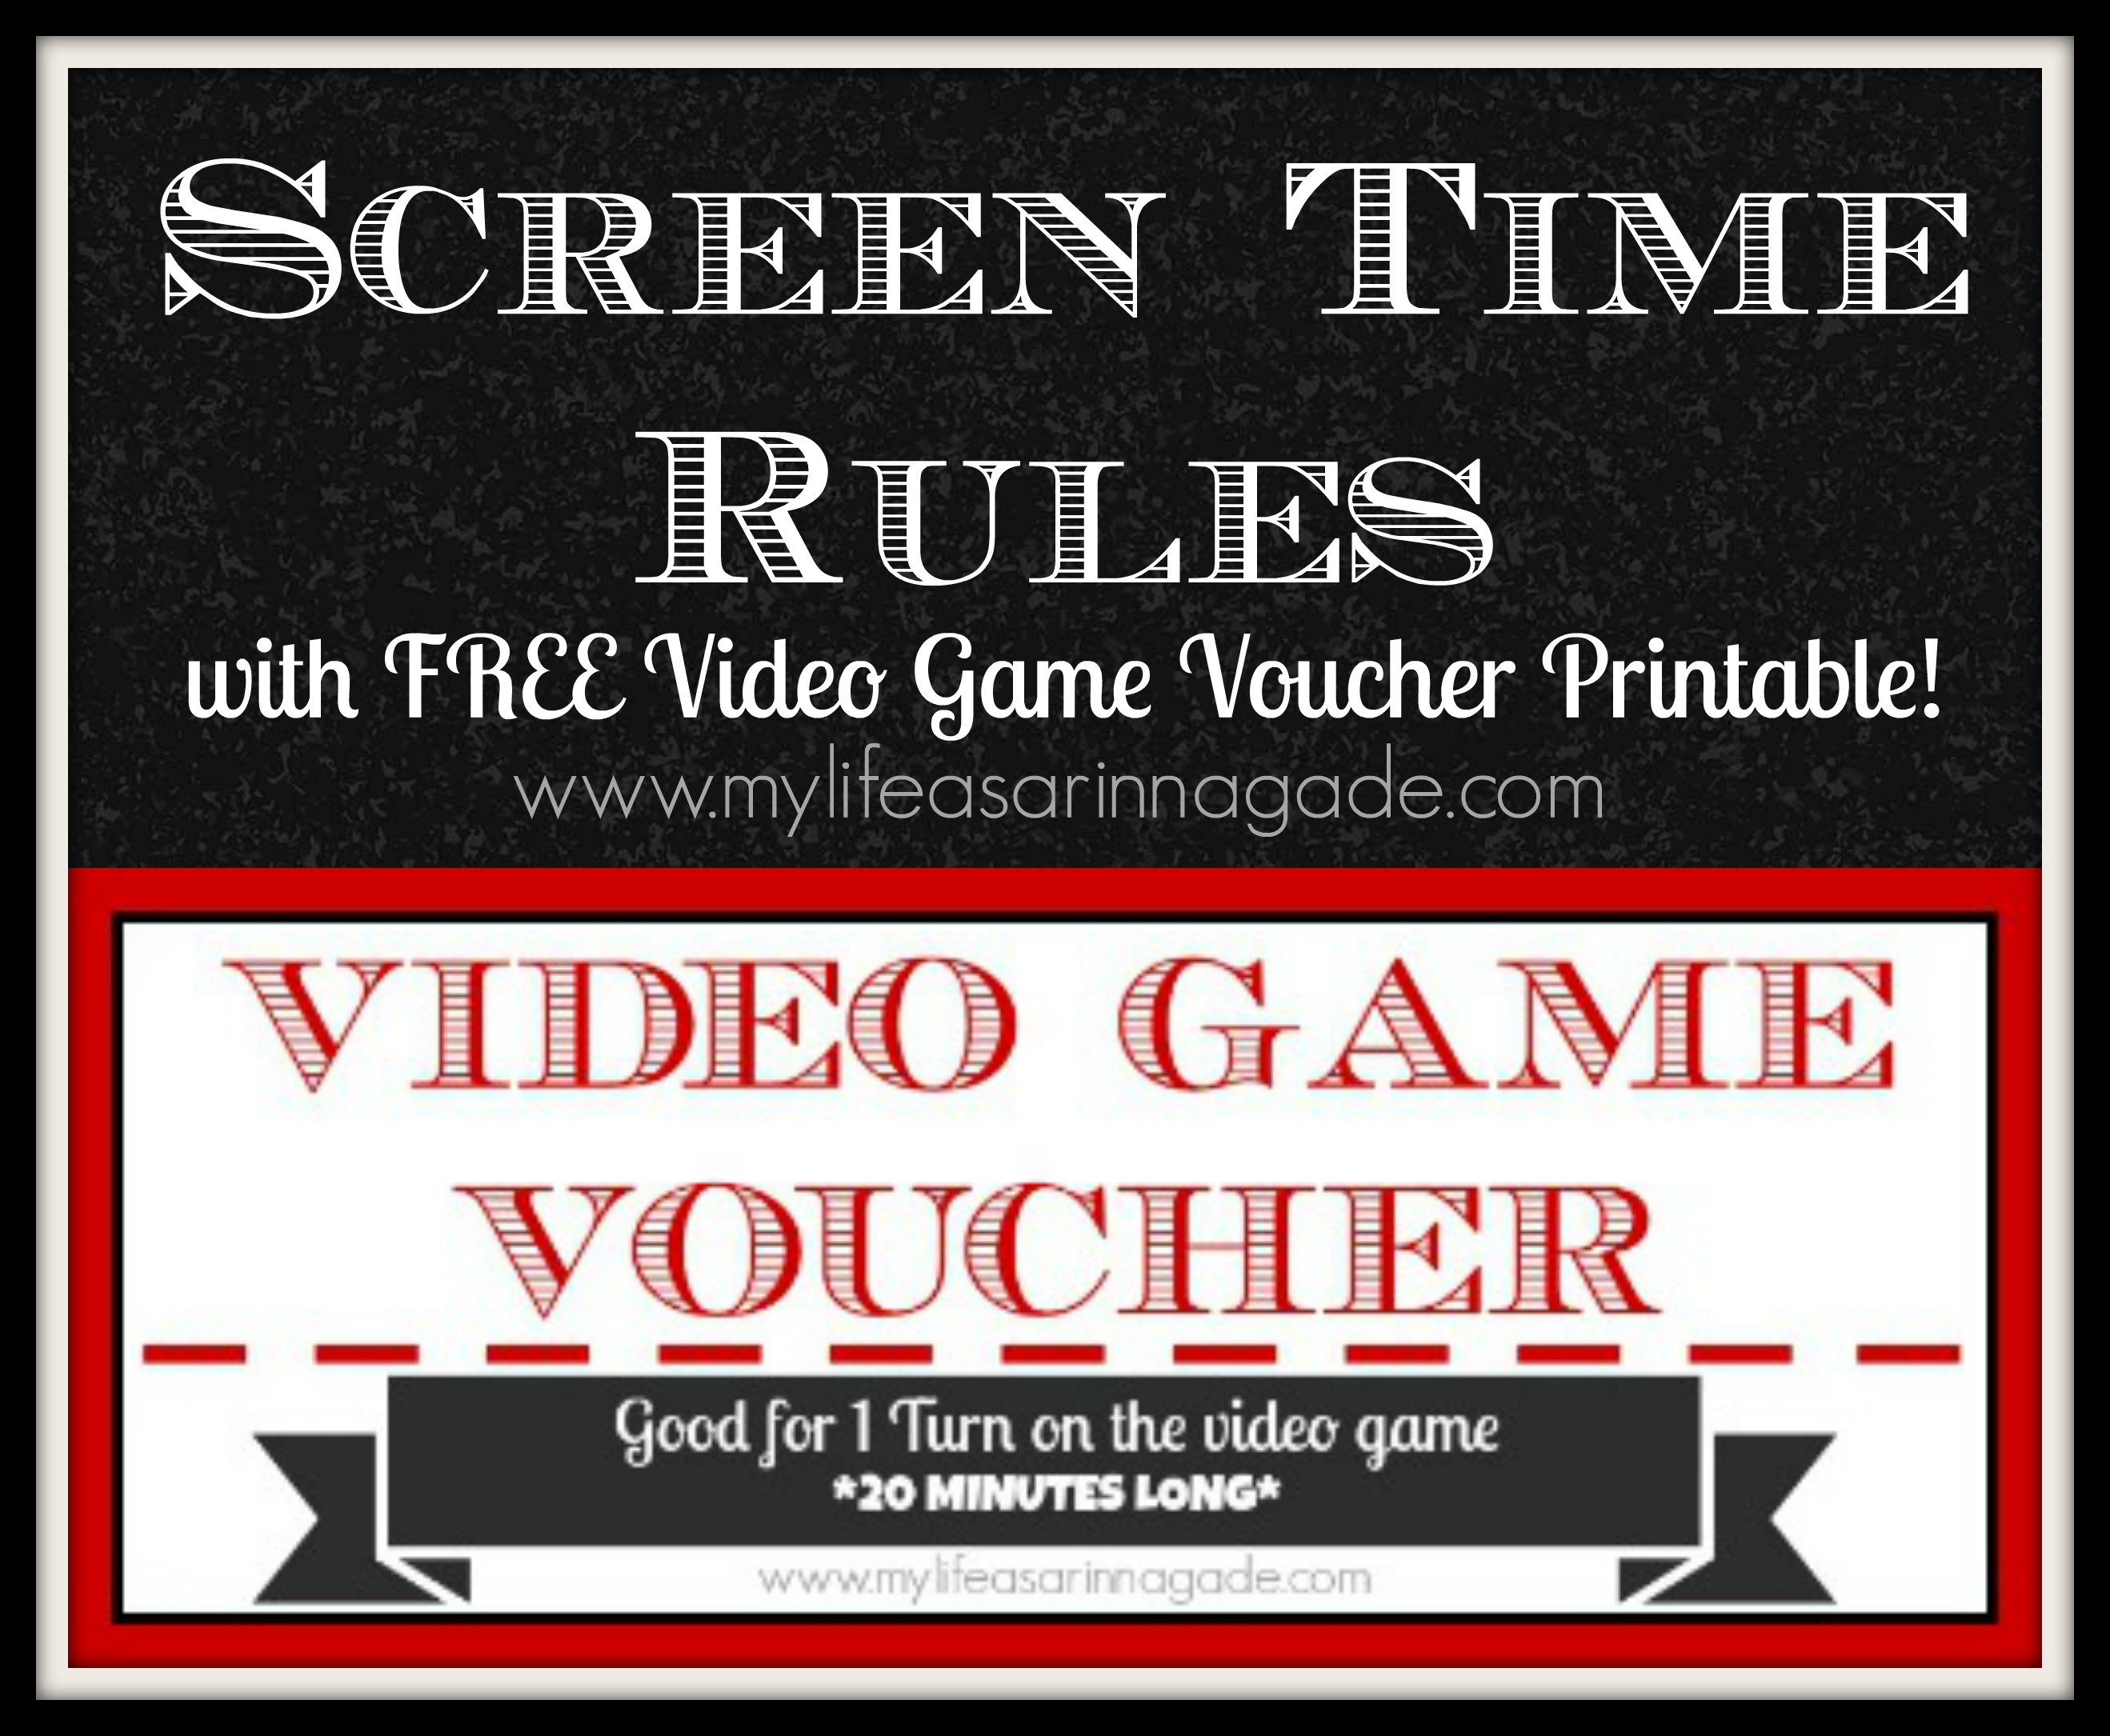 picture relating to Printable Video called Exhibit Season Tips with Cost-free Movie Sport Voucher Printable